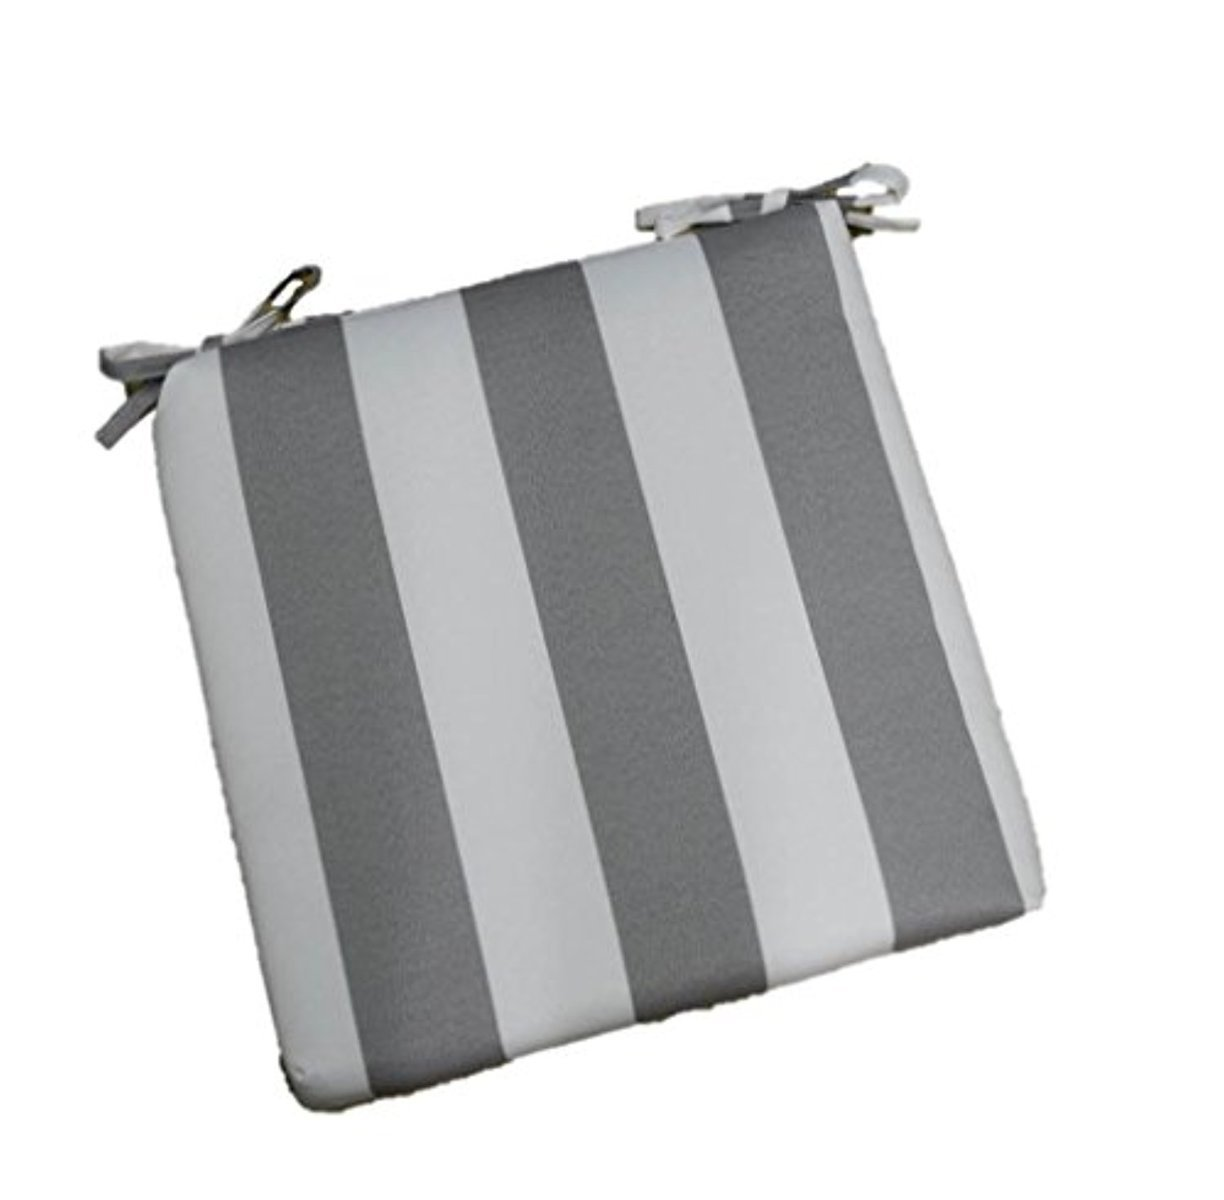 Resort Spa Home Decor Indoor Outdoor Gray and White Stripe Universal 2 Thick Foam Seat Cushion with Ties for Dining Patio Chair – Choose Size